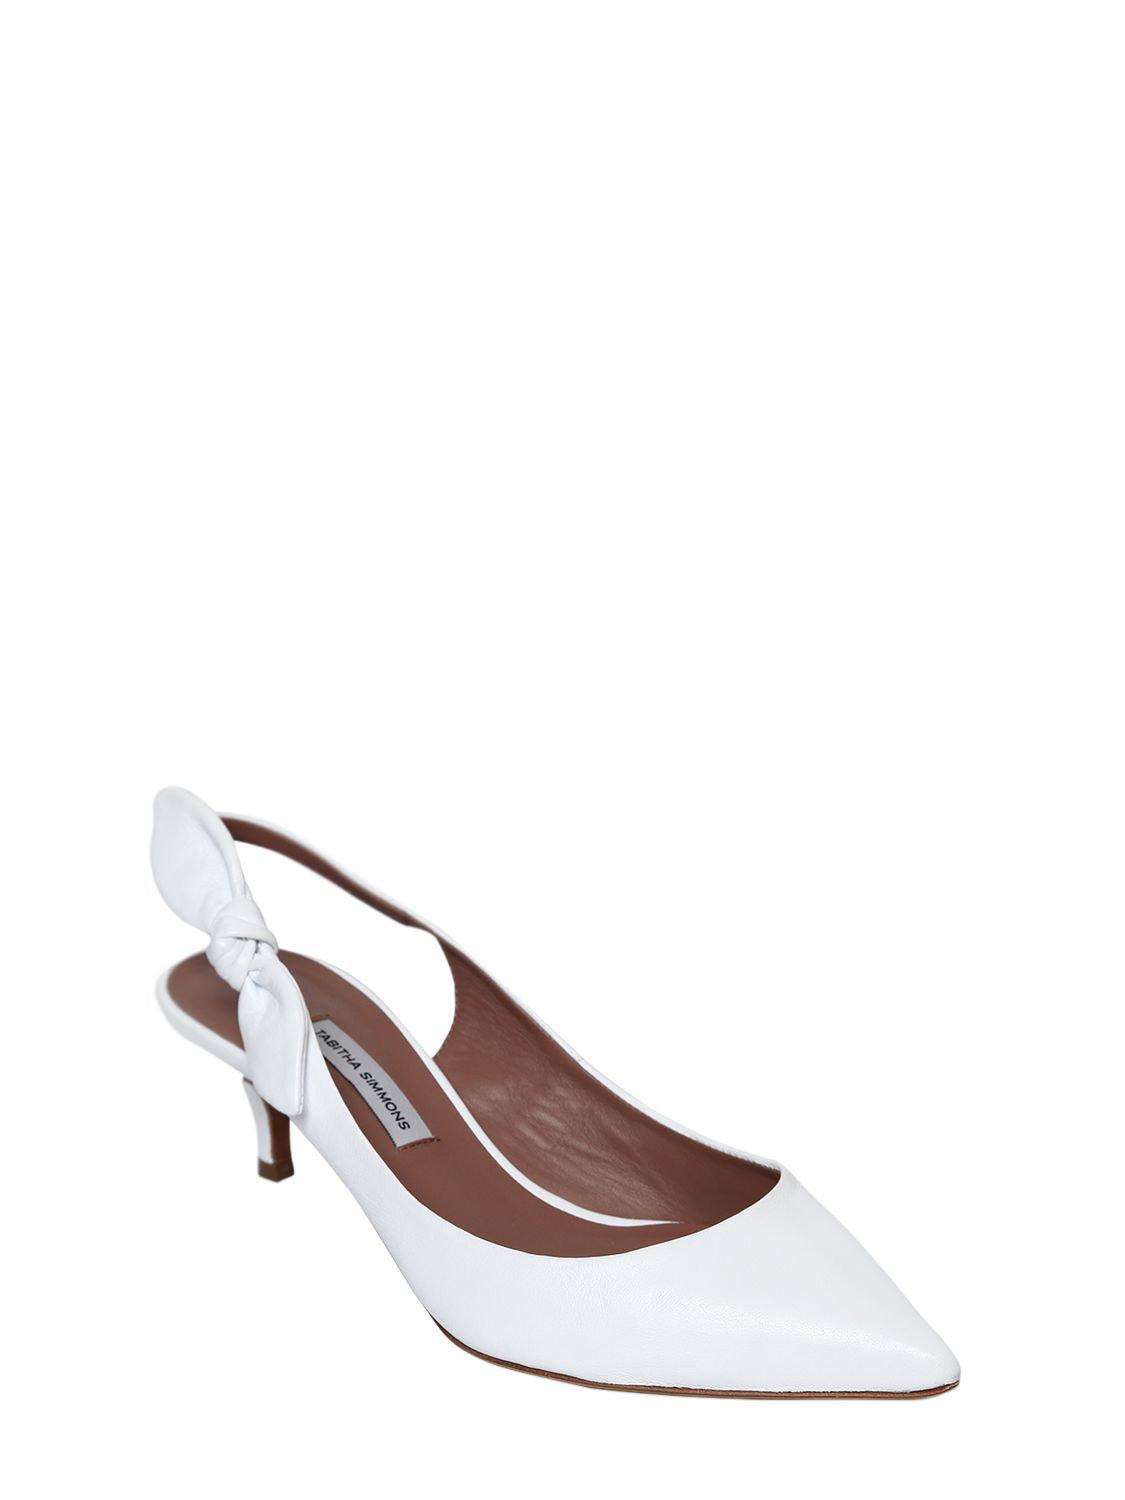 291496219e4 Lyst - Tabitha Simmons Rise Leather Slingback Pumps in White - Save  24.186046511627907%